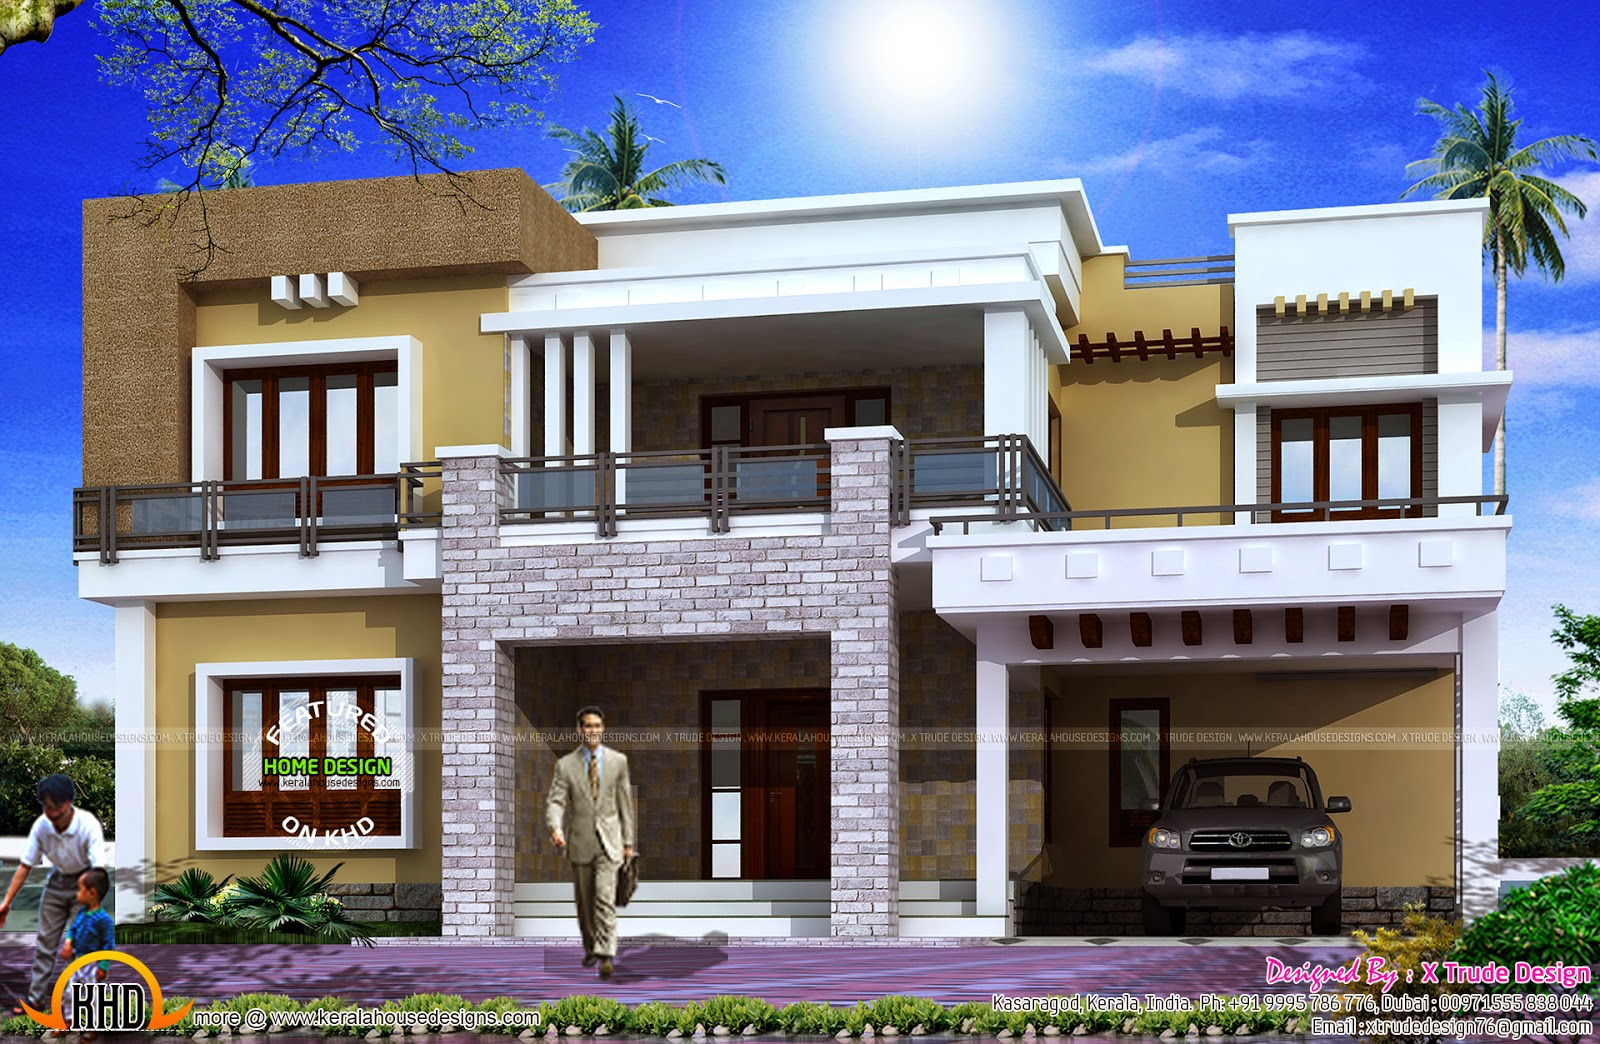 Keralahousedesigns july 2015 for Front view house plans